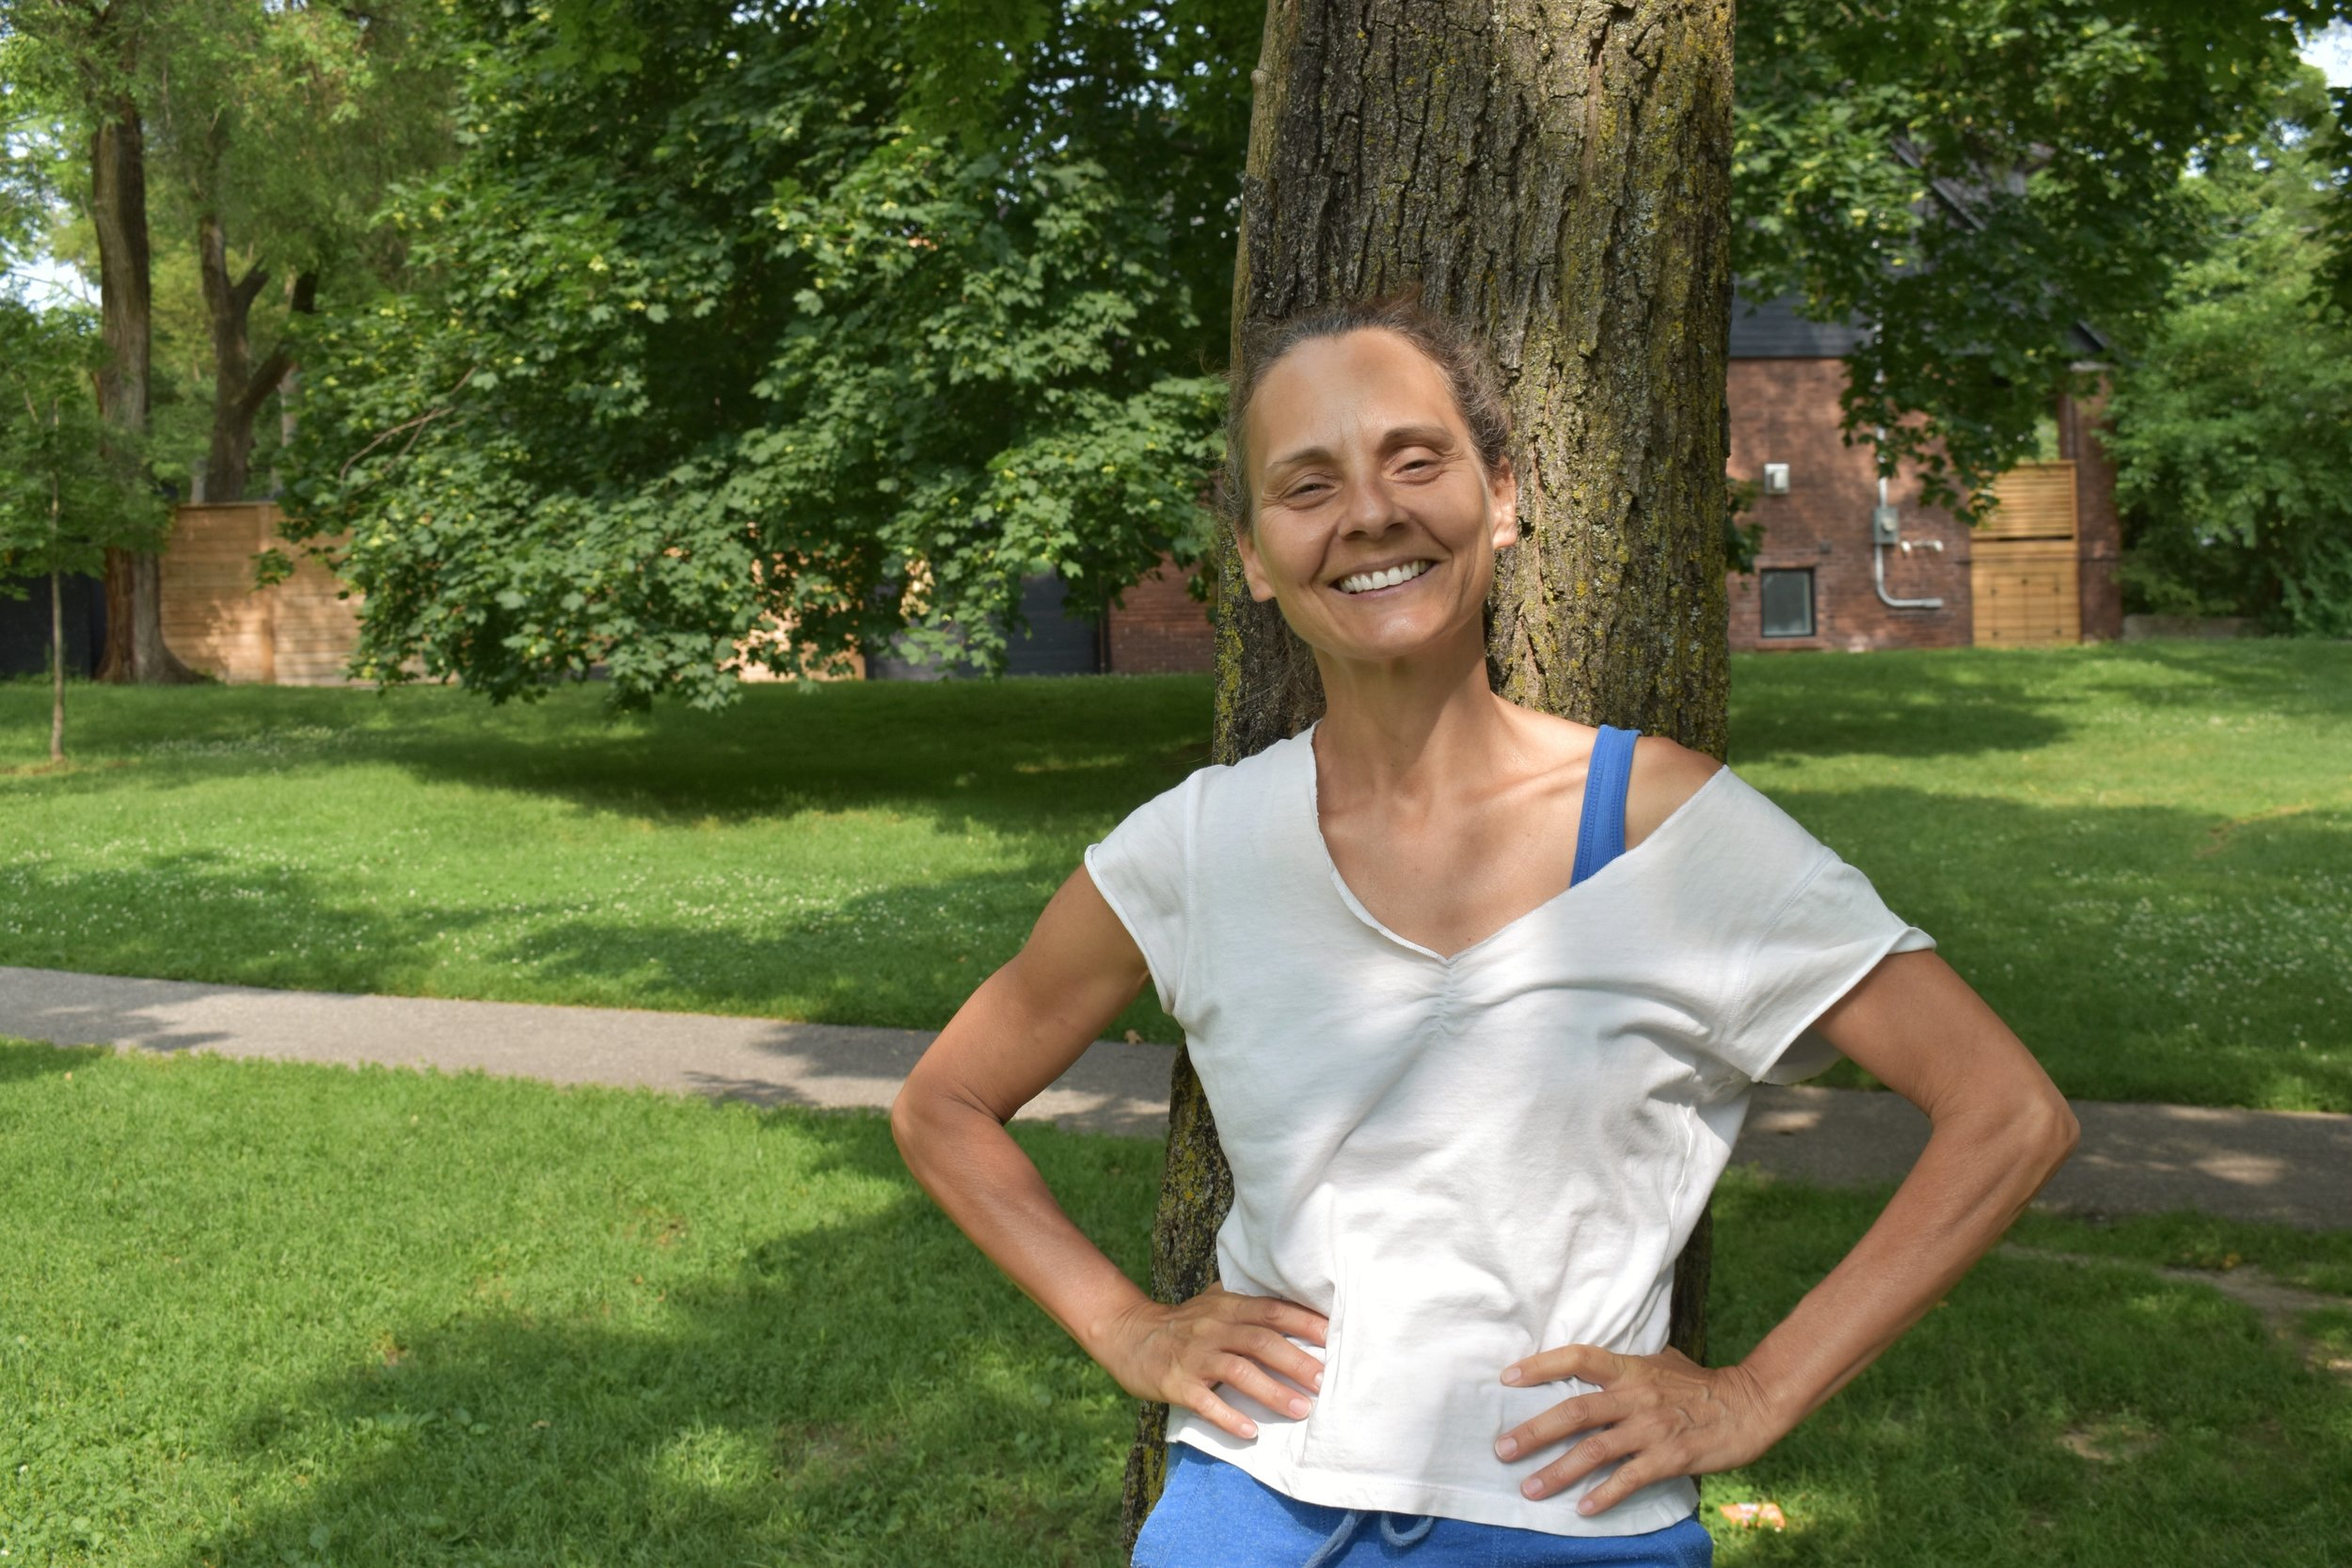 Meet Sylvie Bouchard, Dusk Dances Festival Director. You'll see her organizing everything behind the scenes at Withrow Park. If you see her, be sure to say hi and express your thoughts // FLEUR BOOMSMA